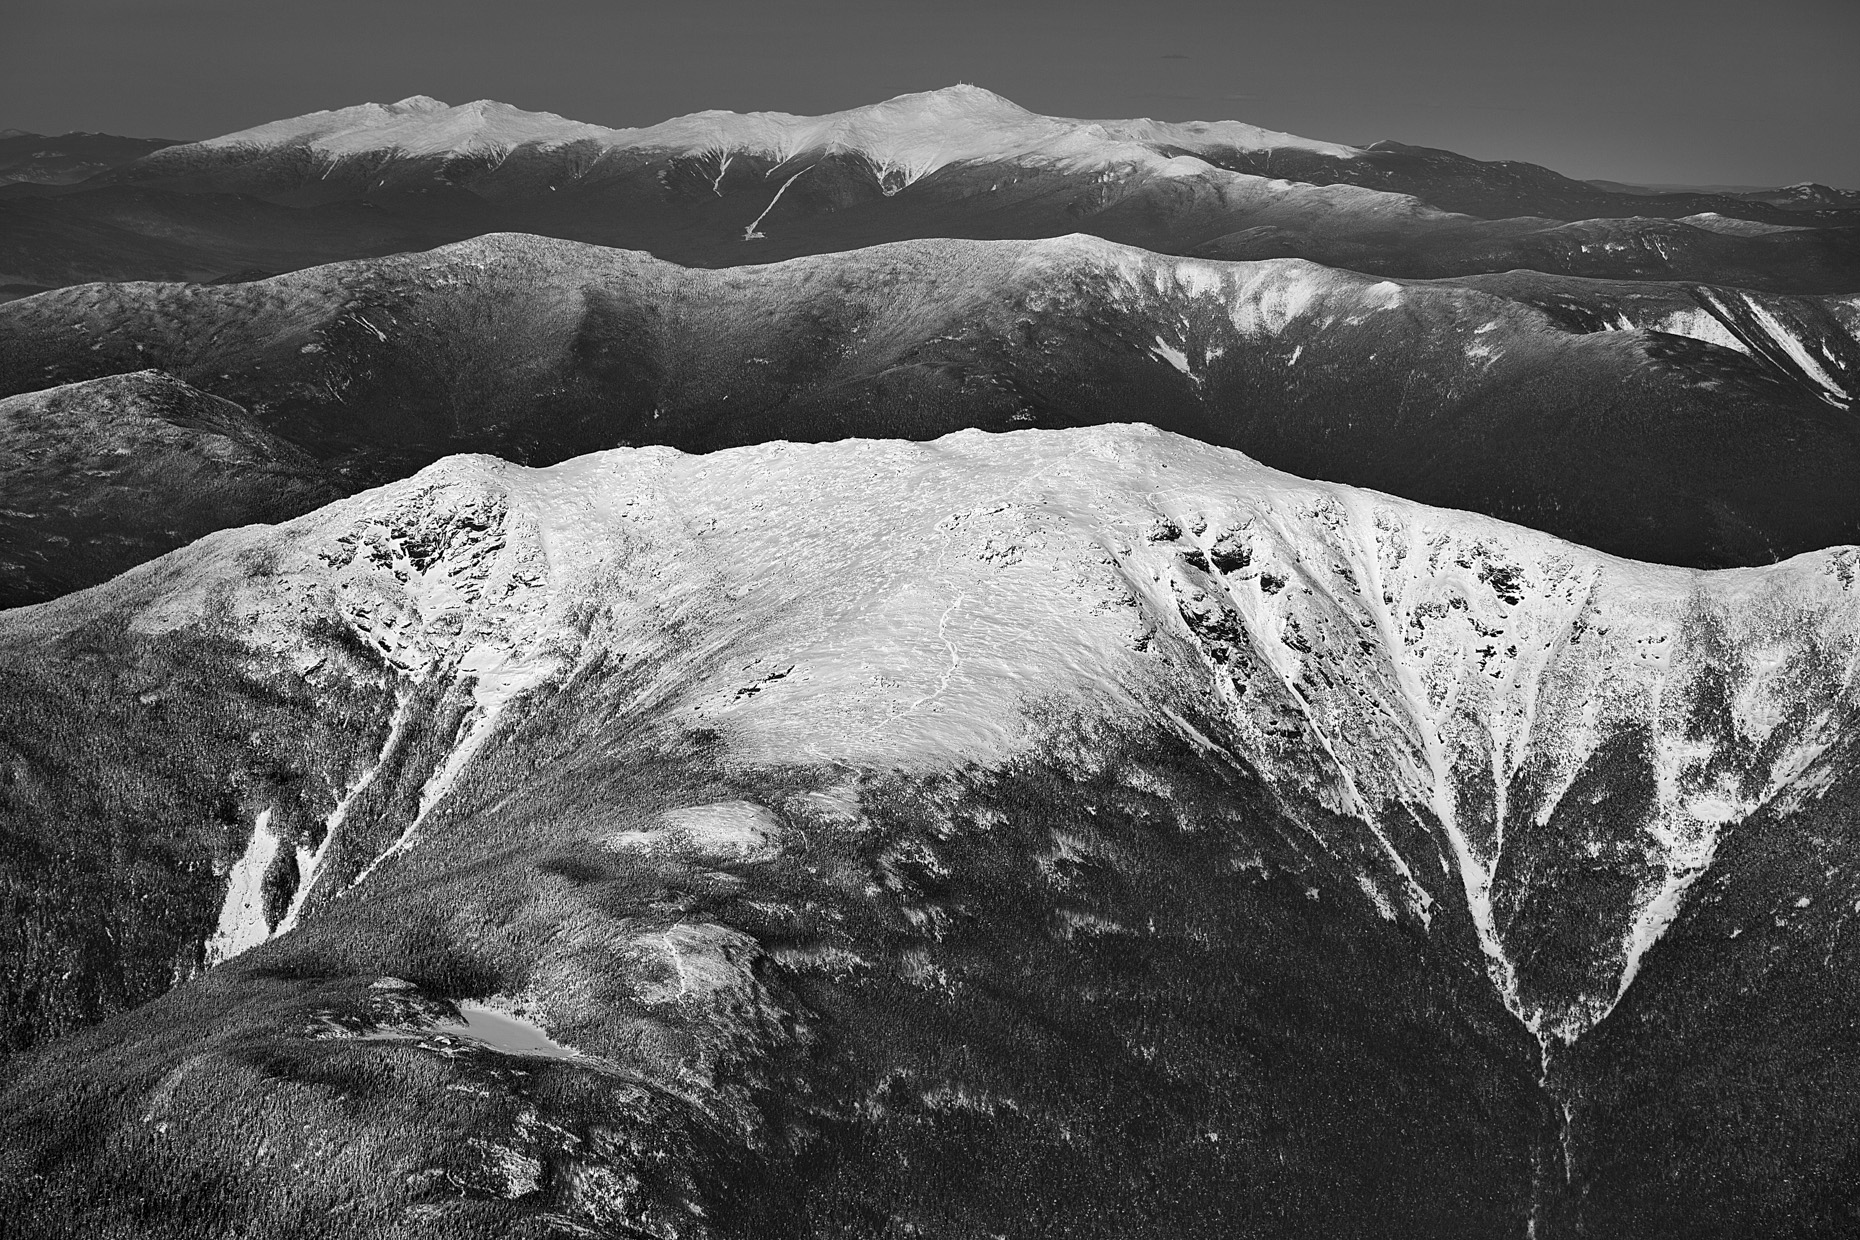 BN_WhiteMountains-3851